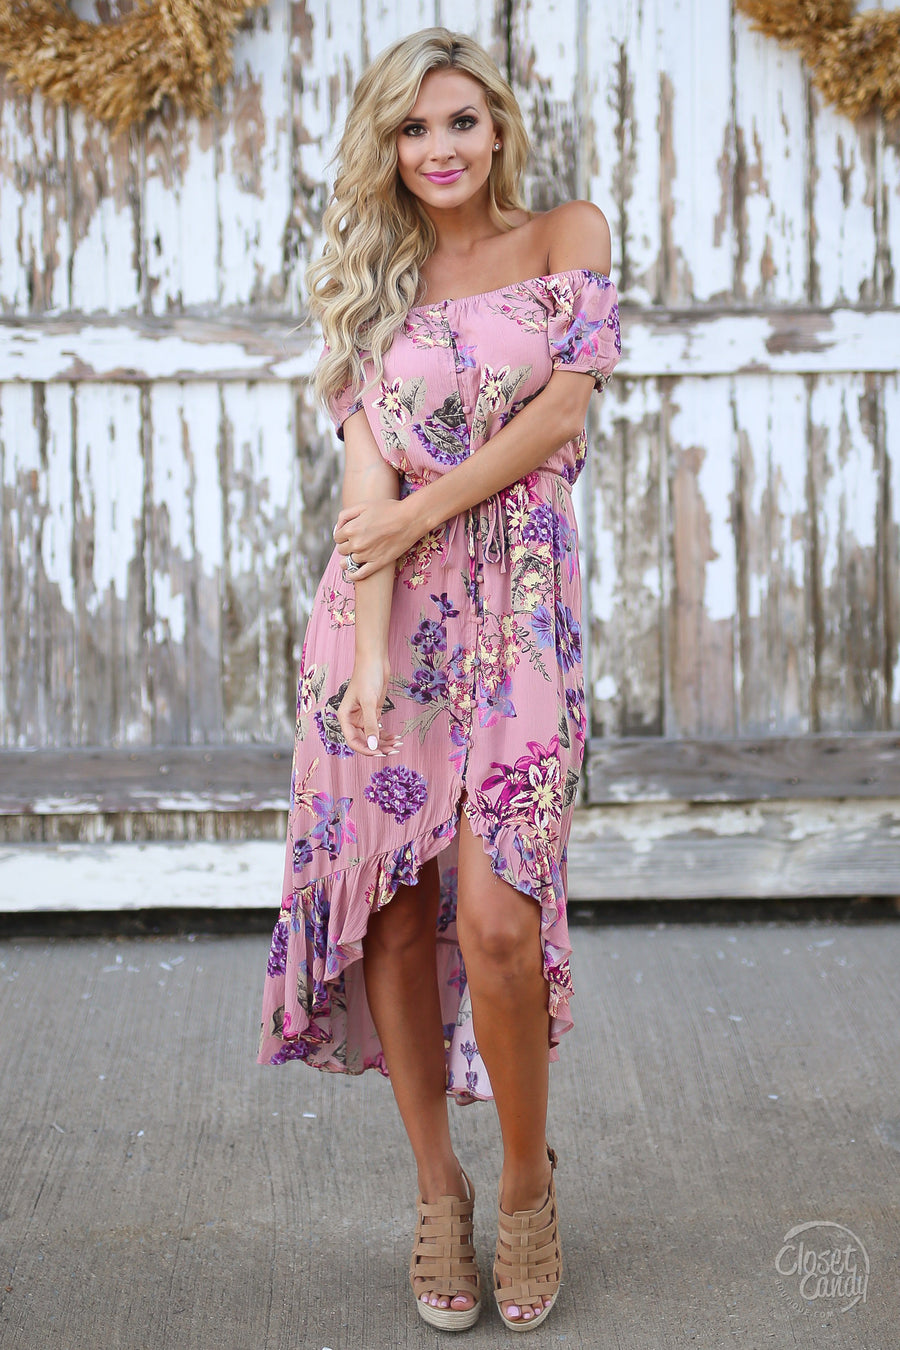 Hold Me Tight Dress womens floral maxi high low dress off shoulder summer closet candy boutique